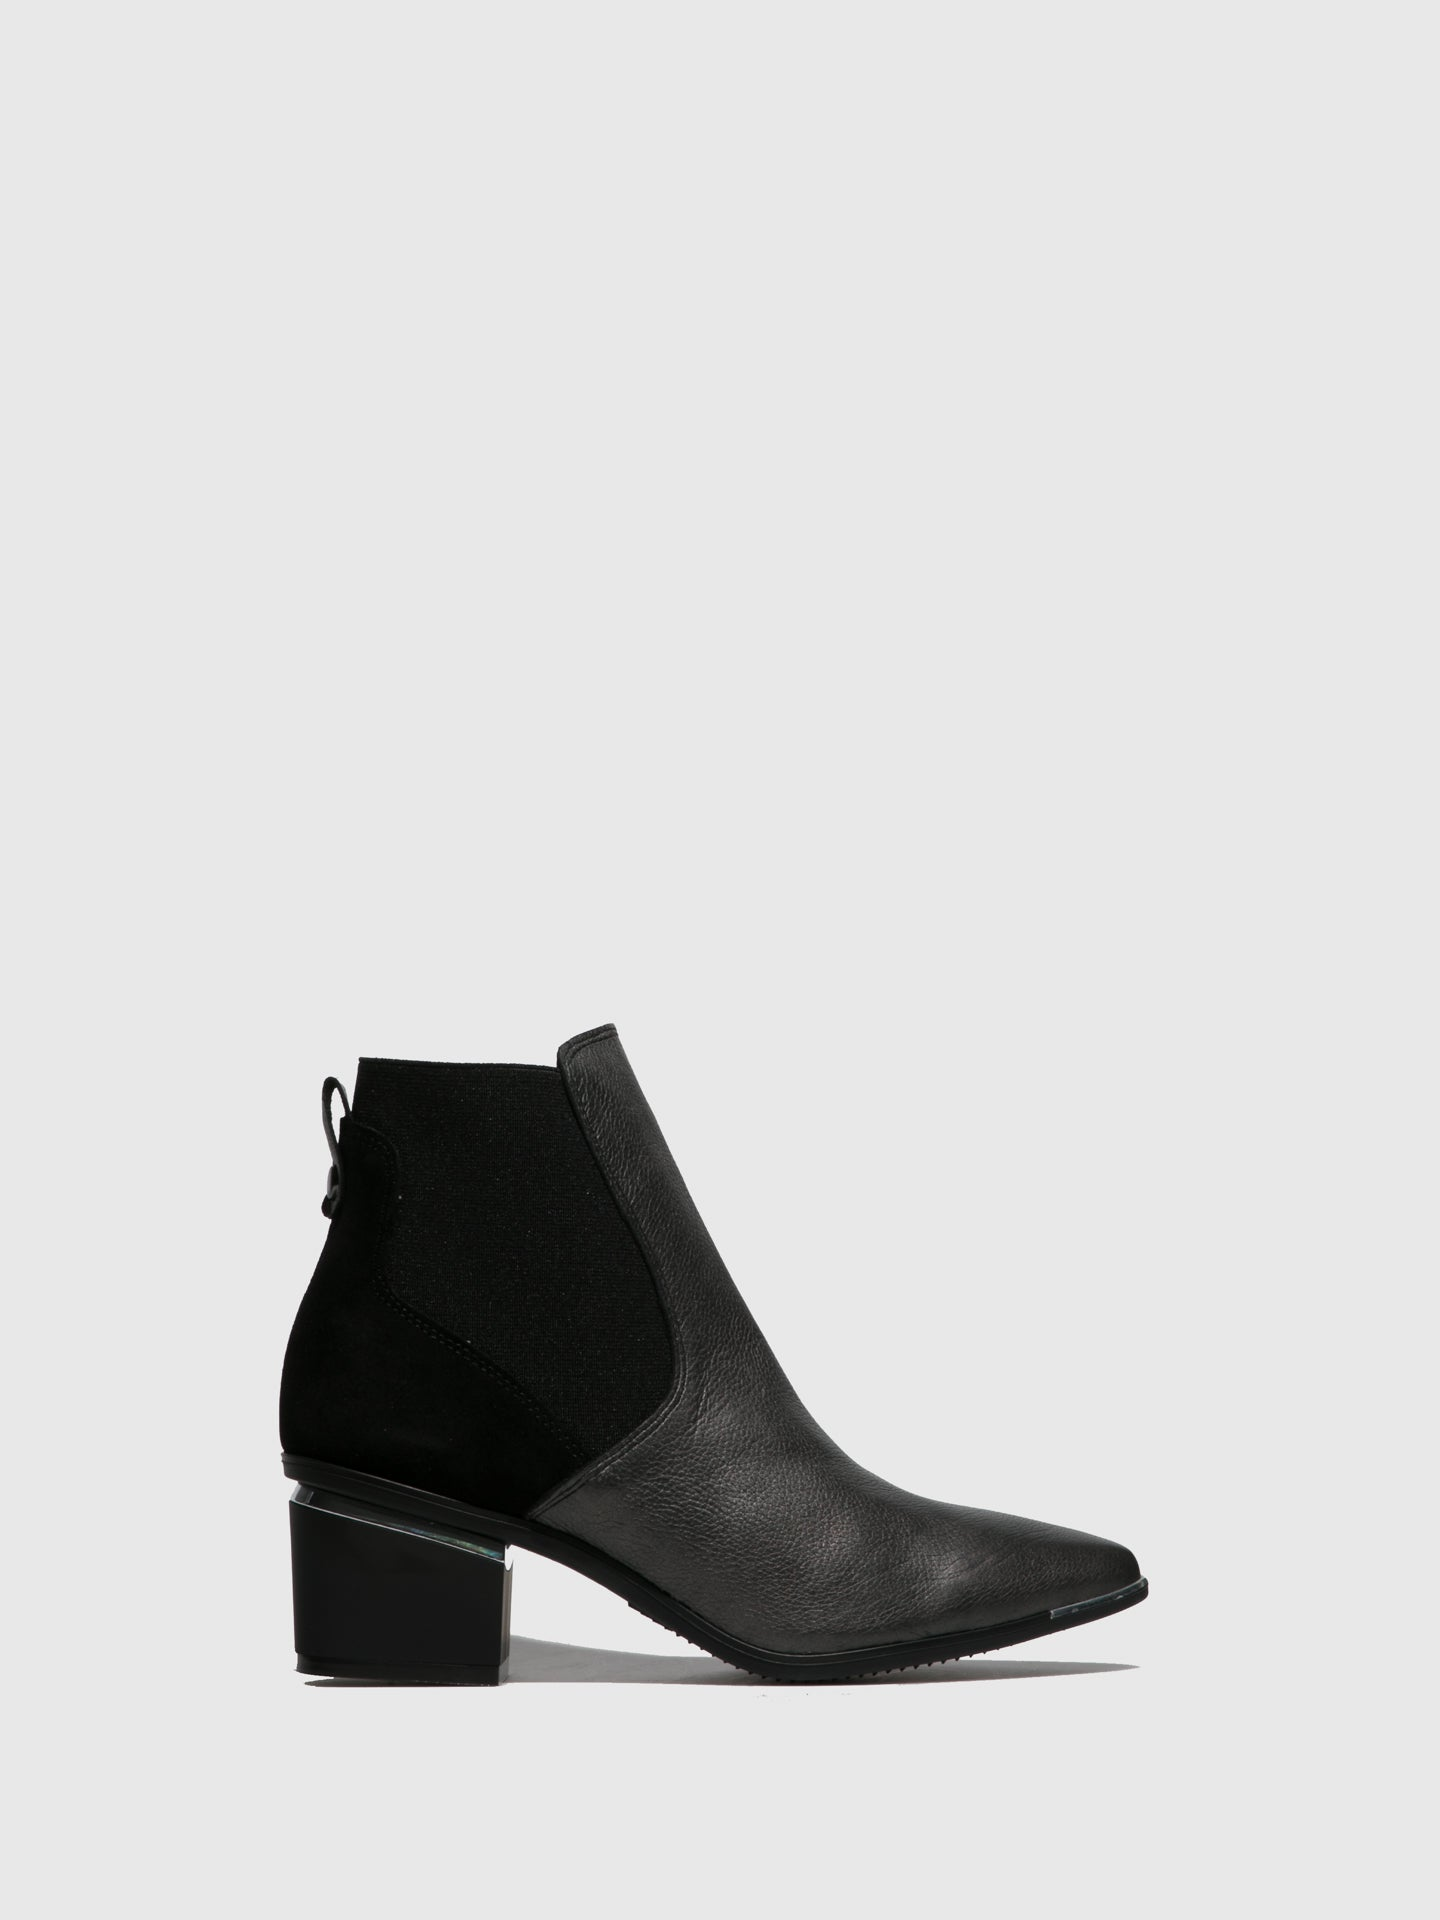 Perlato Silver Black Zip Up Ankle Boots